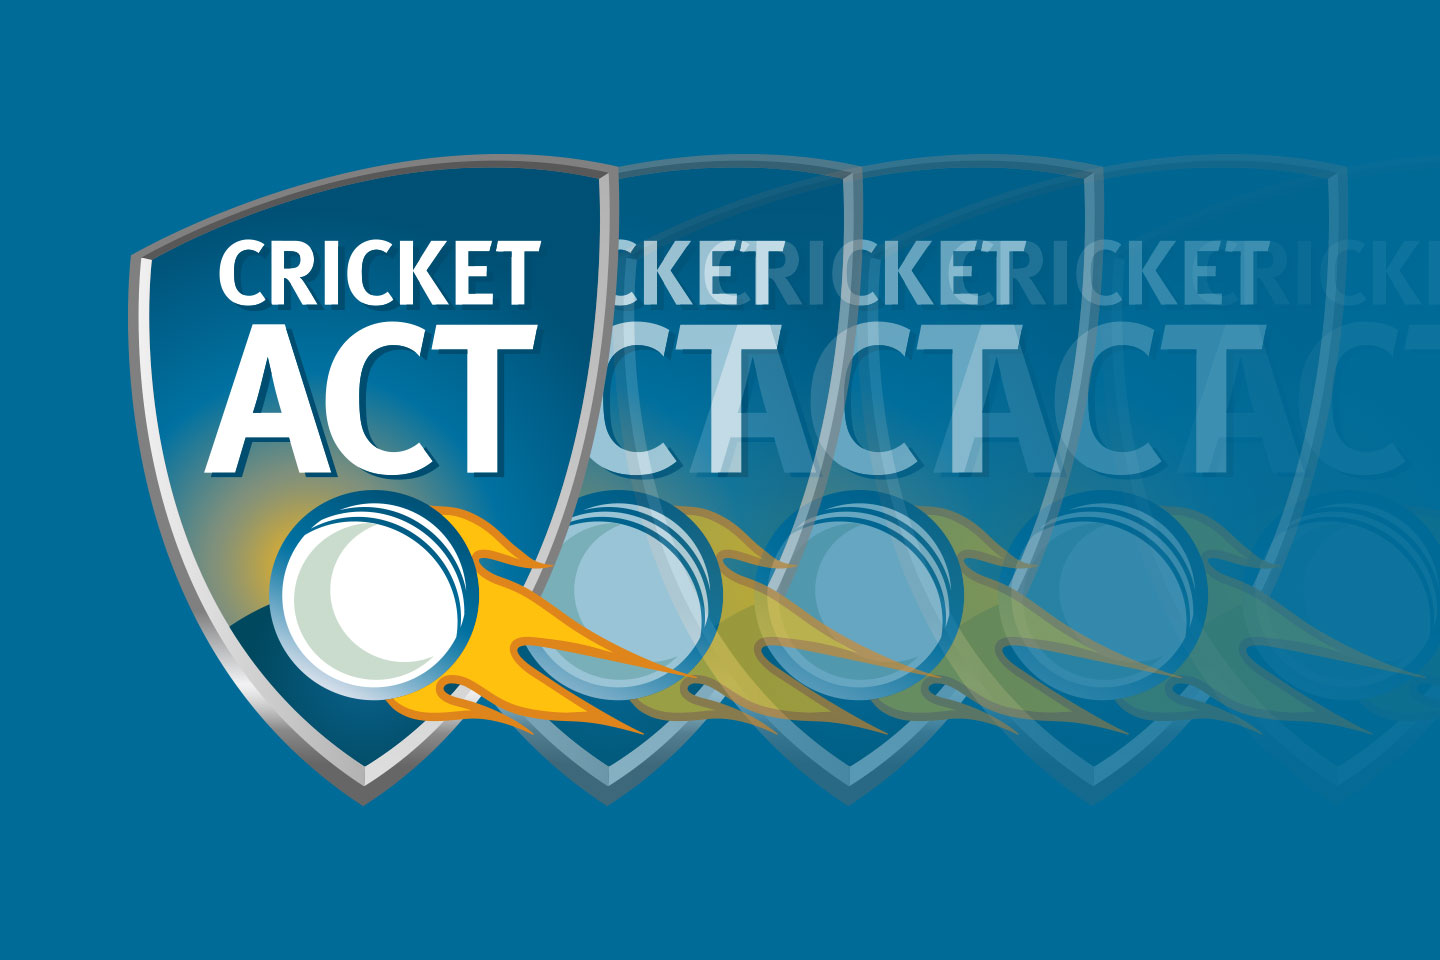 iCollege ACT Comets in T20 Double Header this Sunday